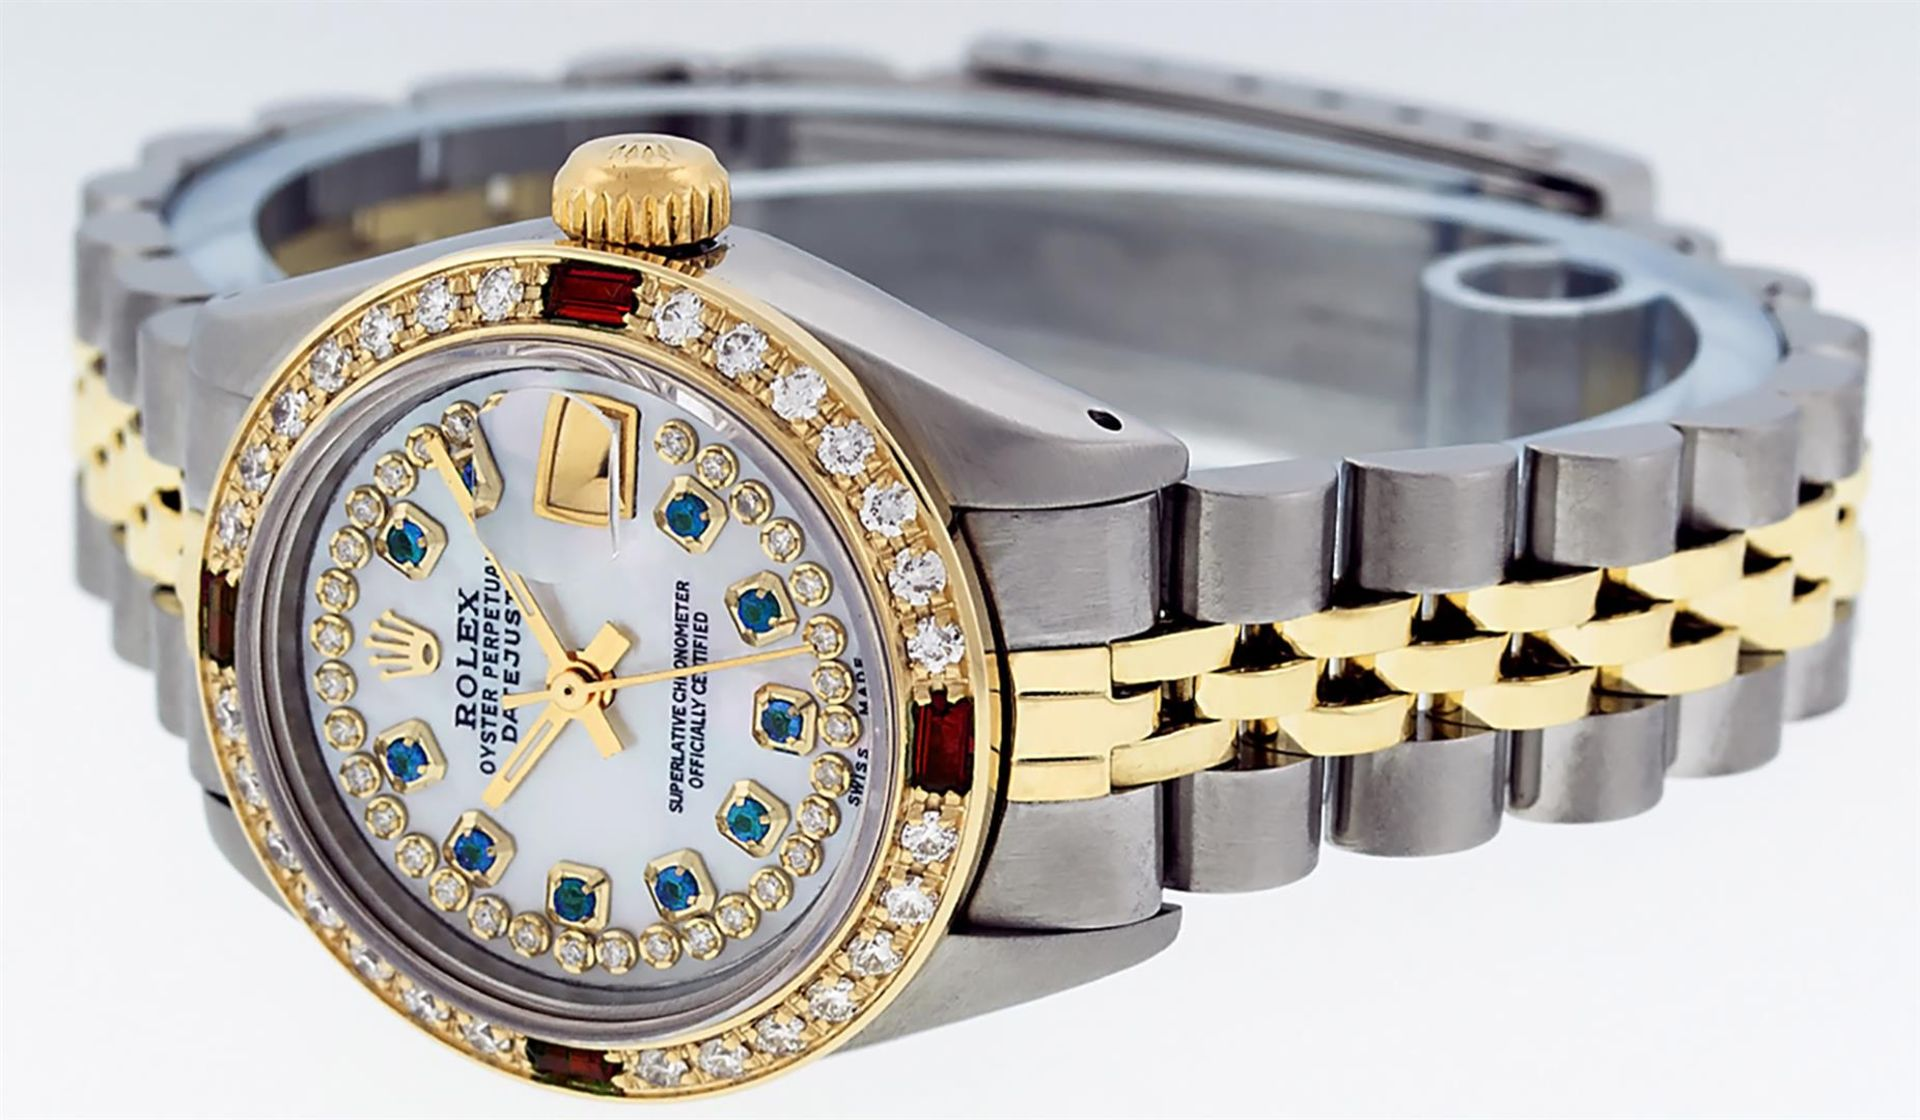 Rolex Ladies 2 Tone MOP Sapphire & Ruby 26MM Oyster Perpetual Datejust Wriswatch - Image 9 of 9